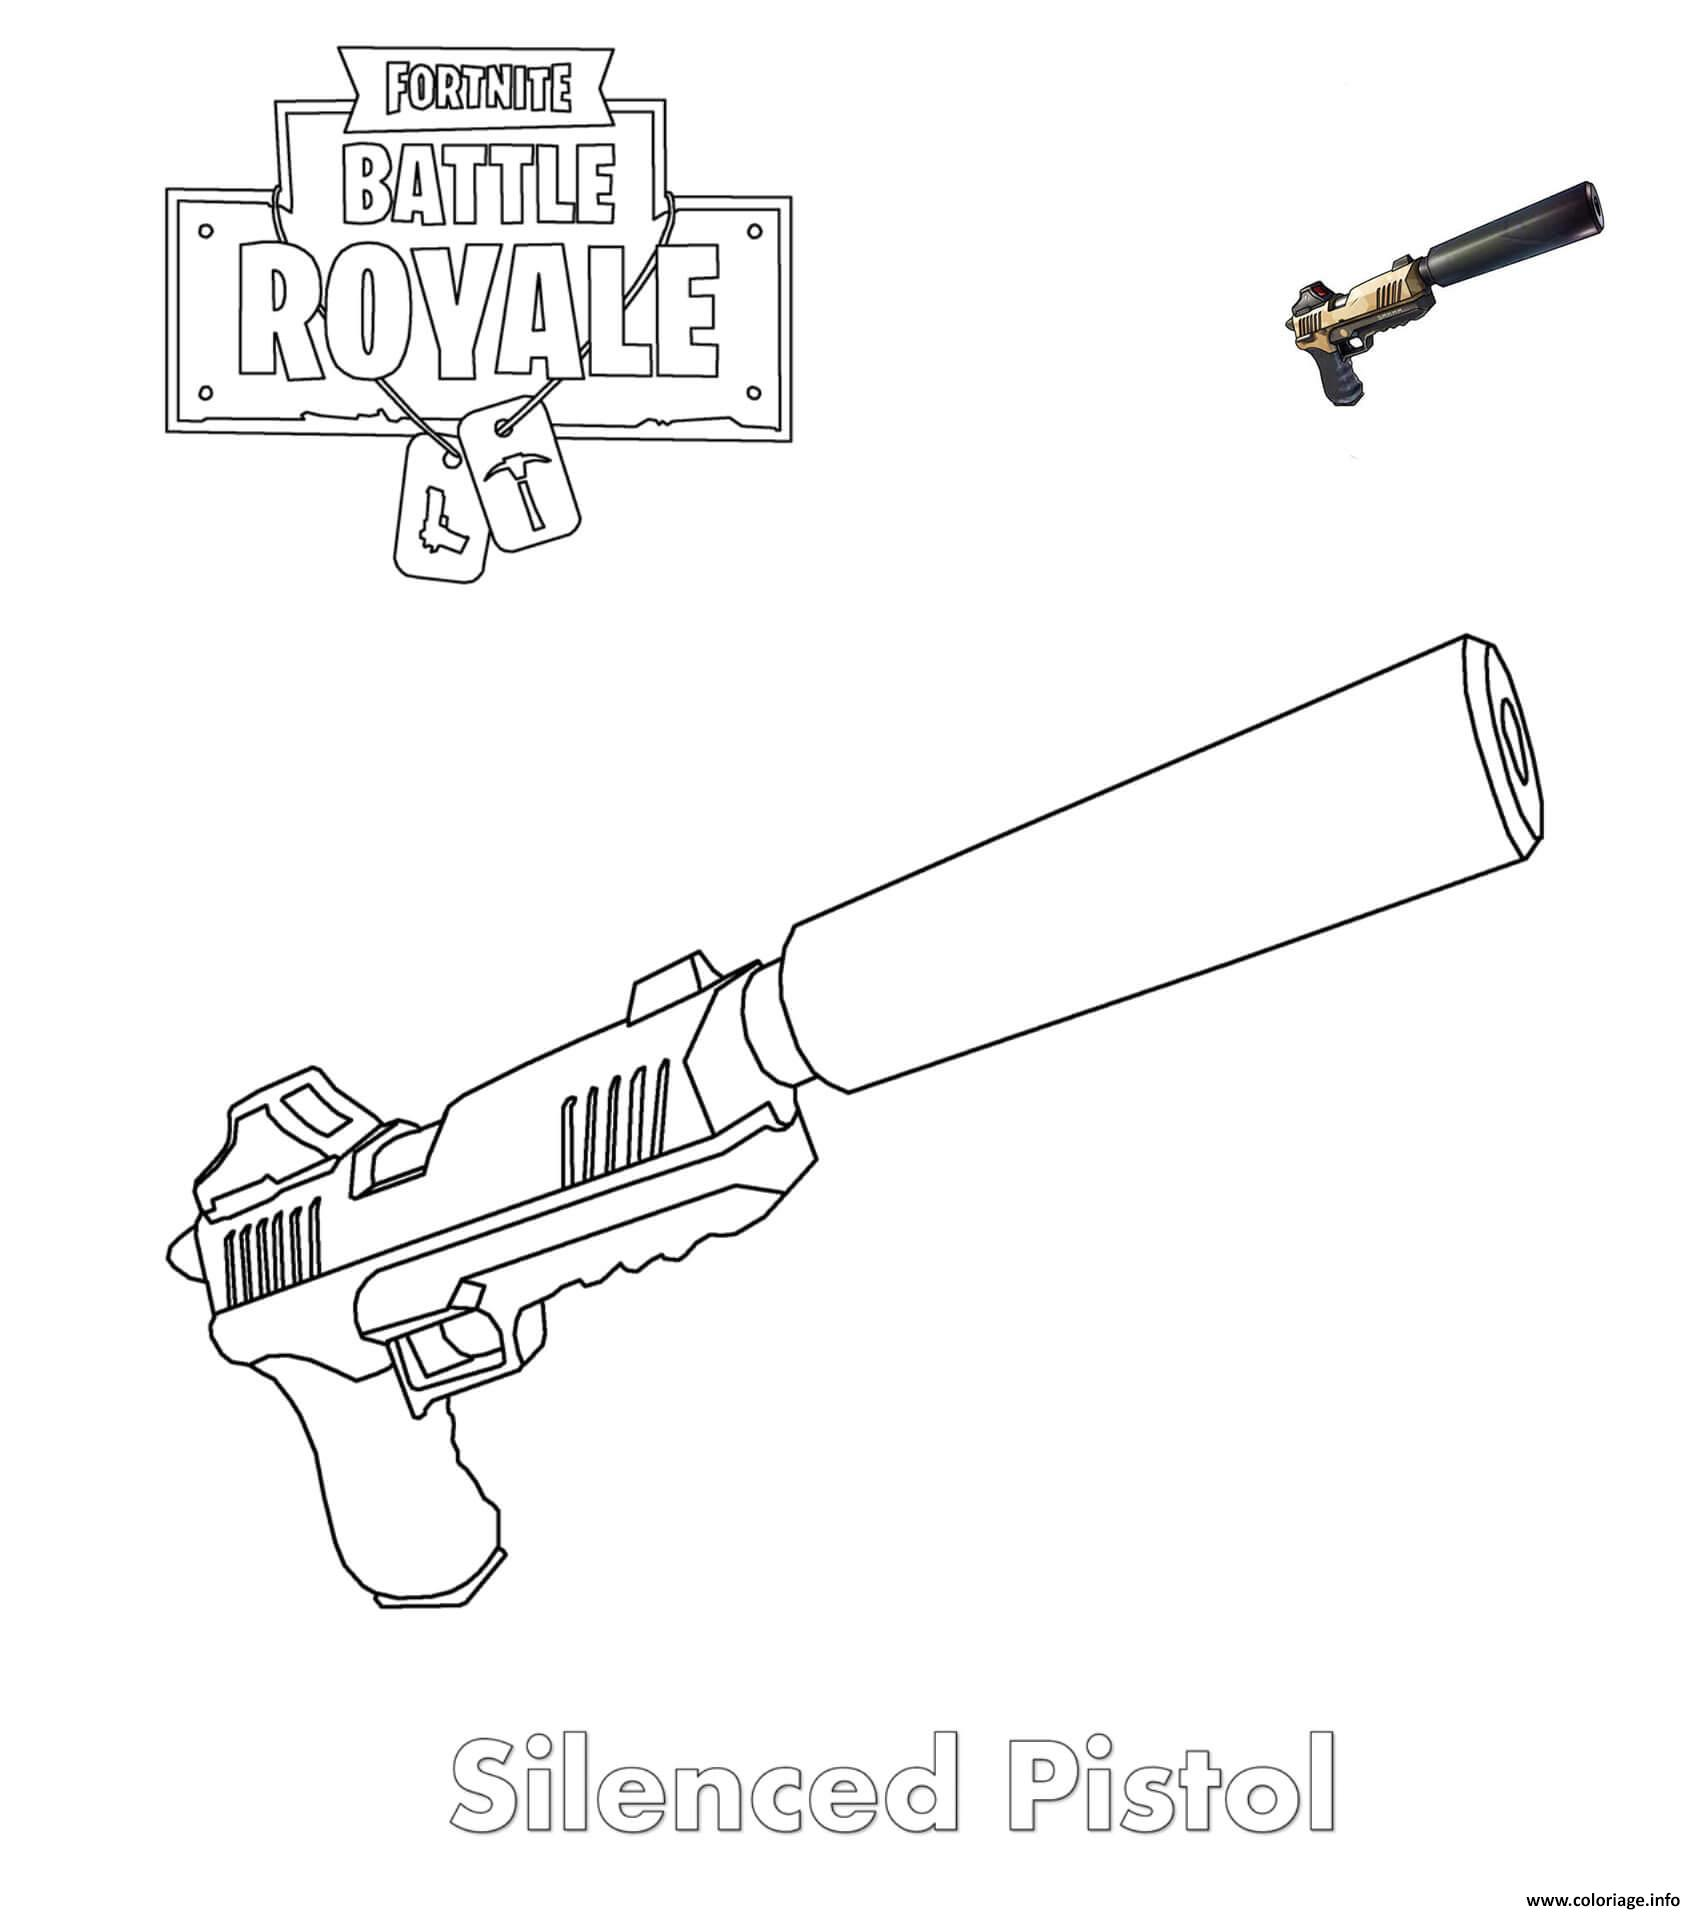 Coloriage Silenced Pistol Fortnite Jecolorie Com